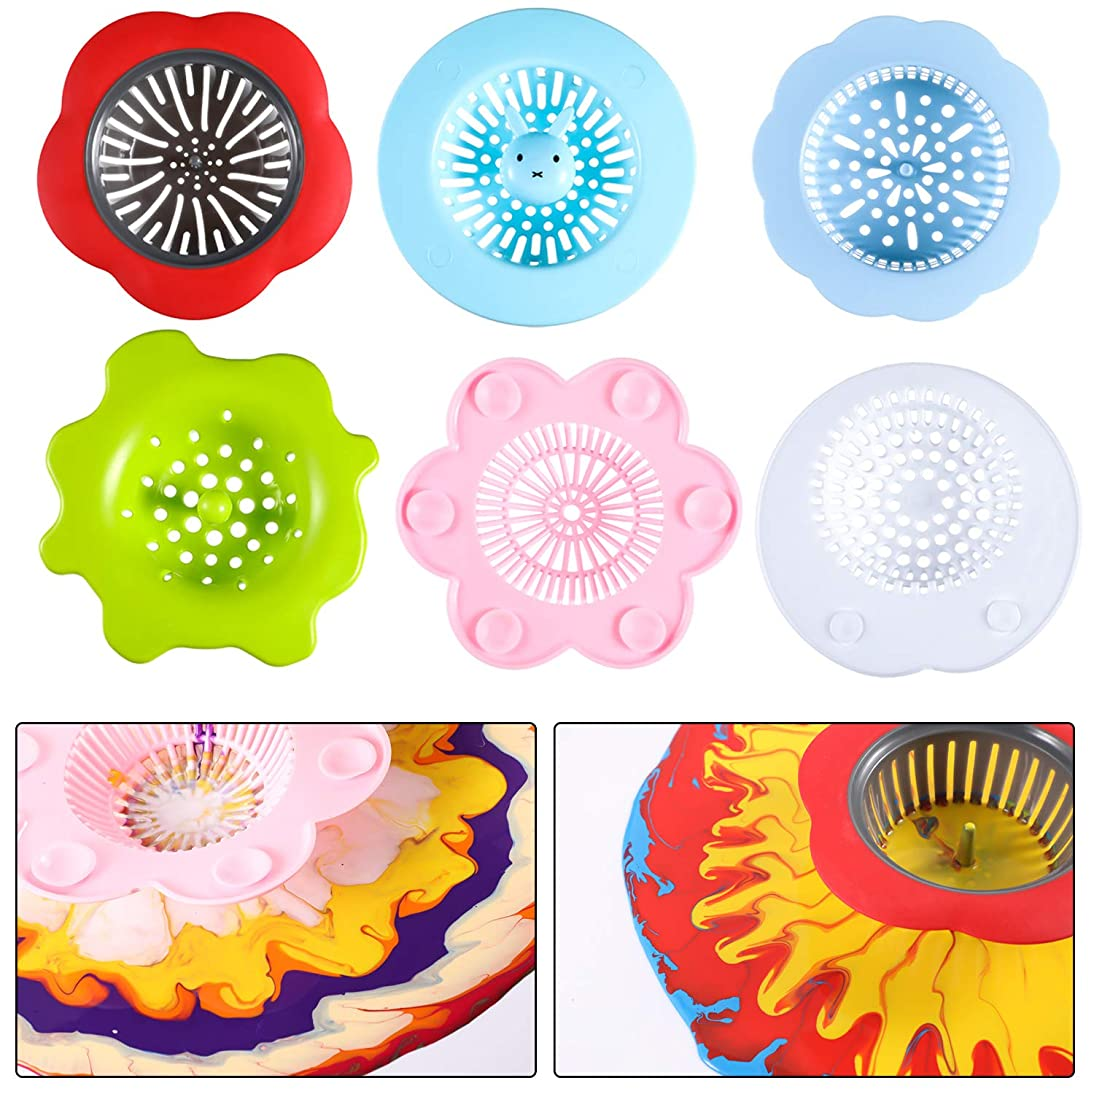 6 Pieces Acrylic Pouring Strainers Plastic Strainers Plastic Silicone Paint Sink Strainer for Paint Pouring Supplies